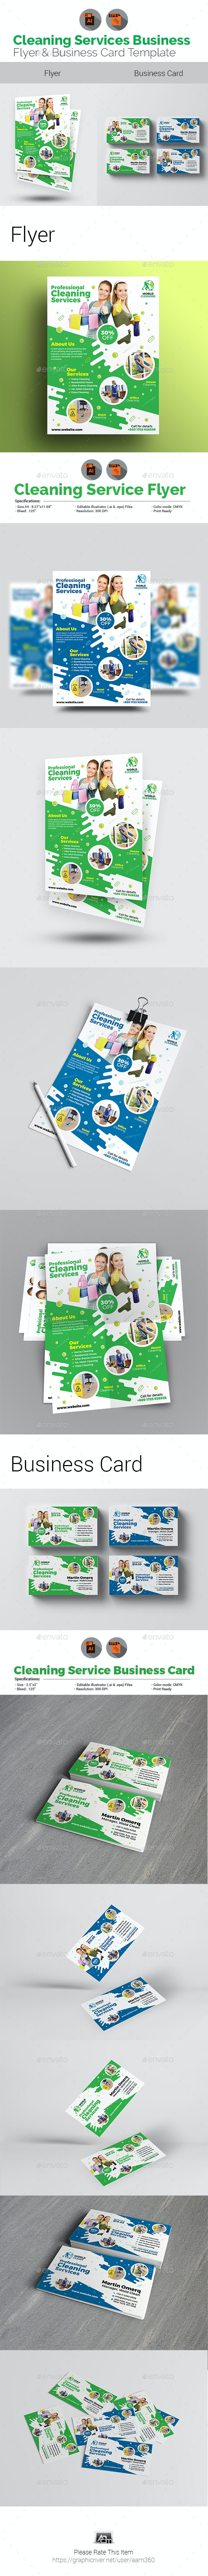 Cleaning Flyer with Business Card Bundle - Flyers Print Templates